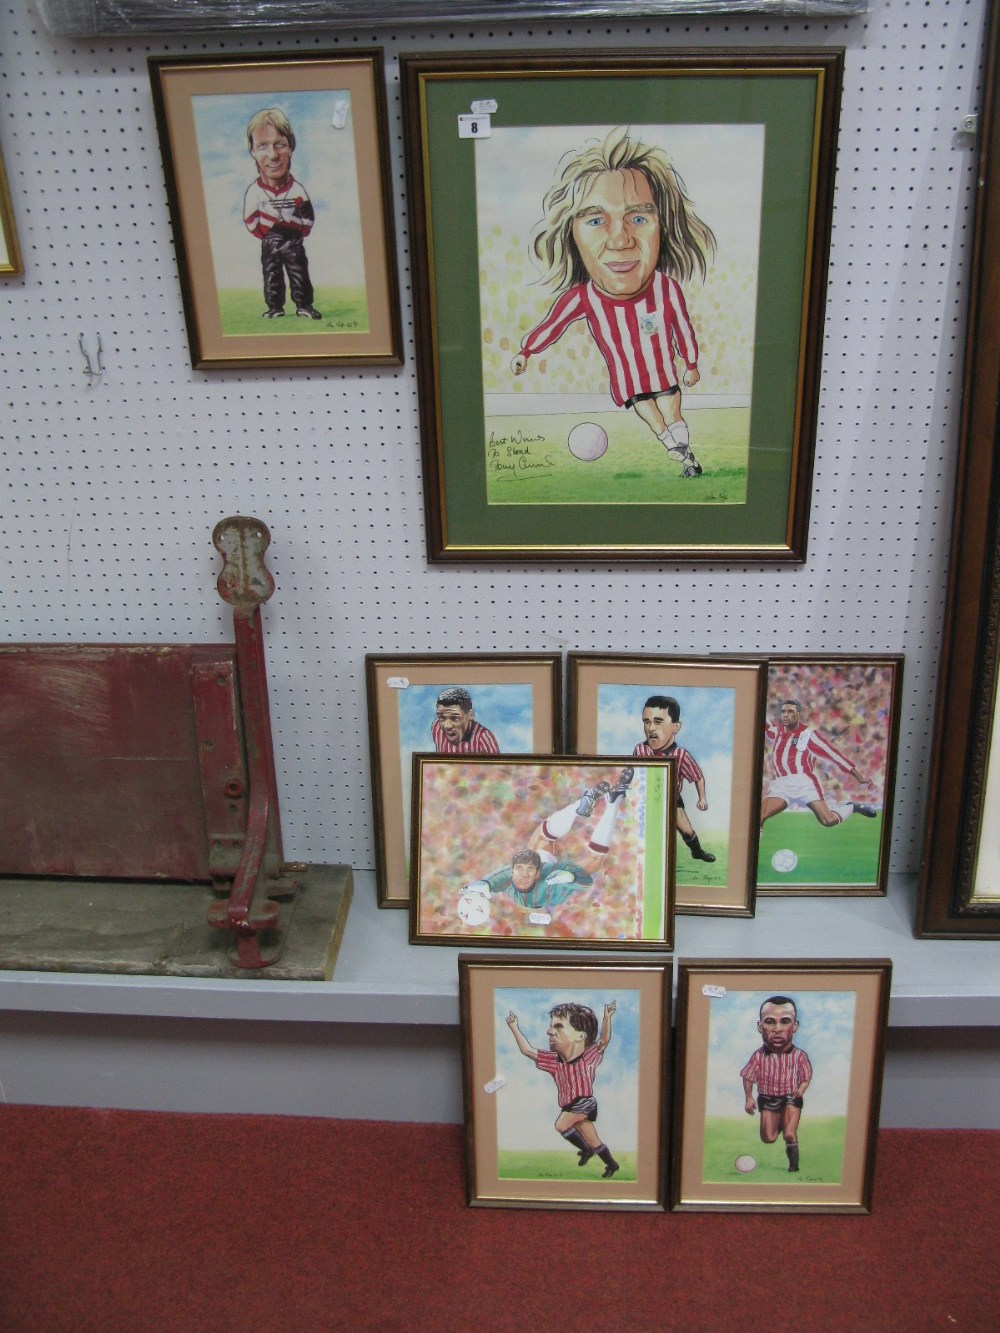 Lot 8 - After Alan Rolfe Eight Player Prints, including Tony Currie personalised signature, personalised